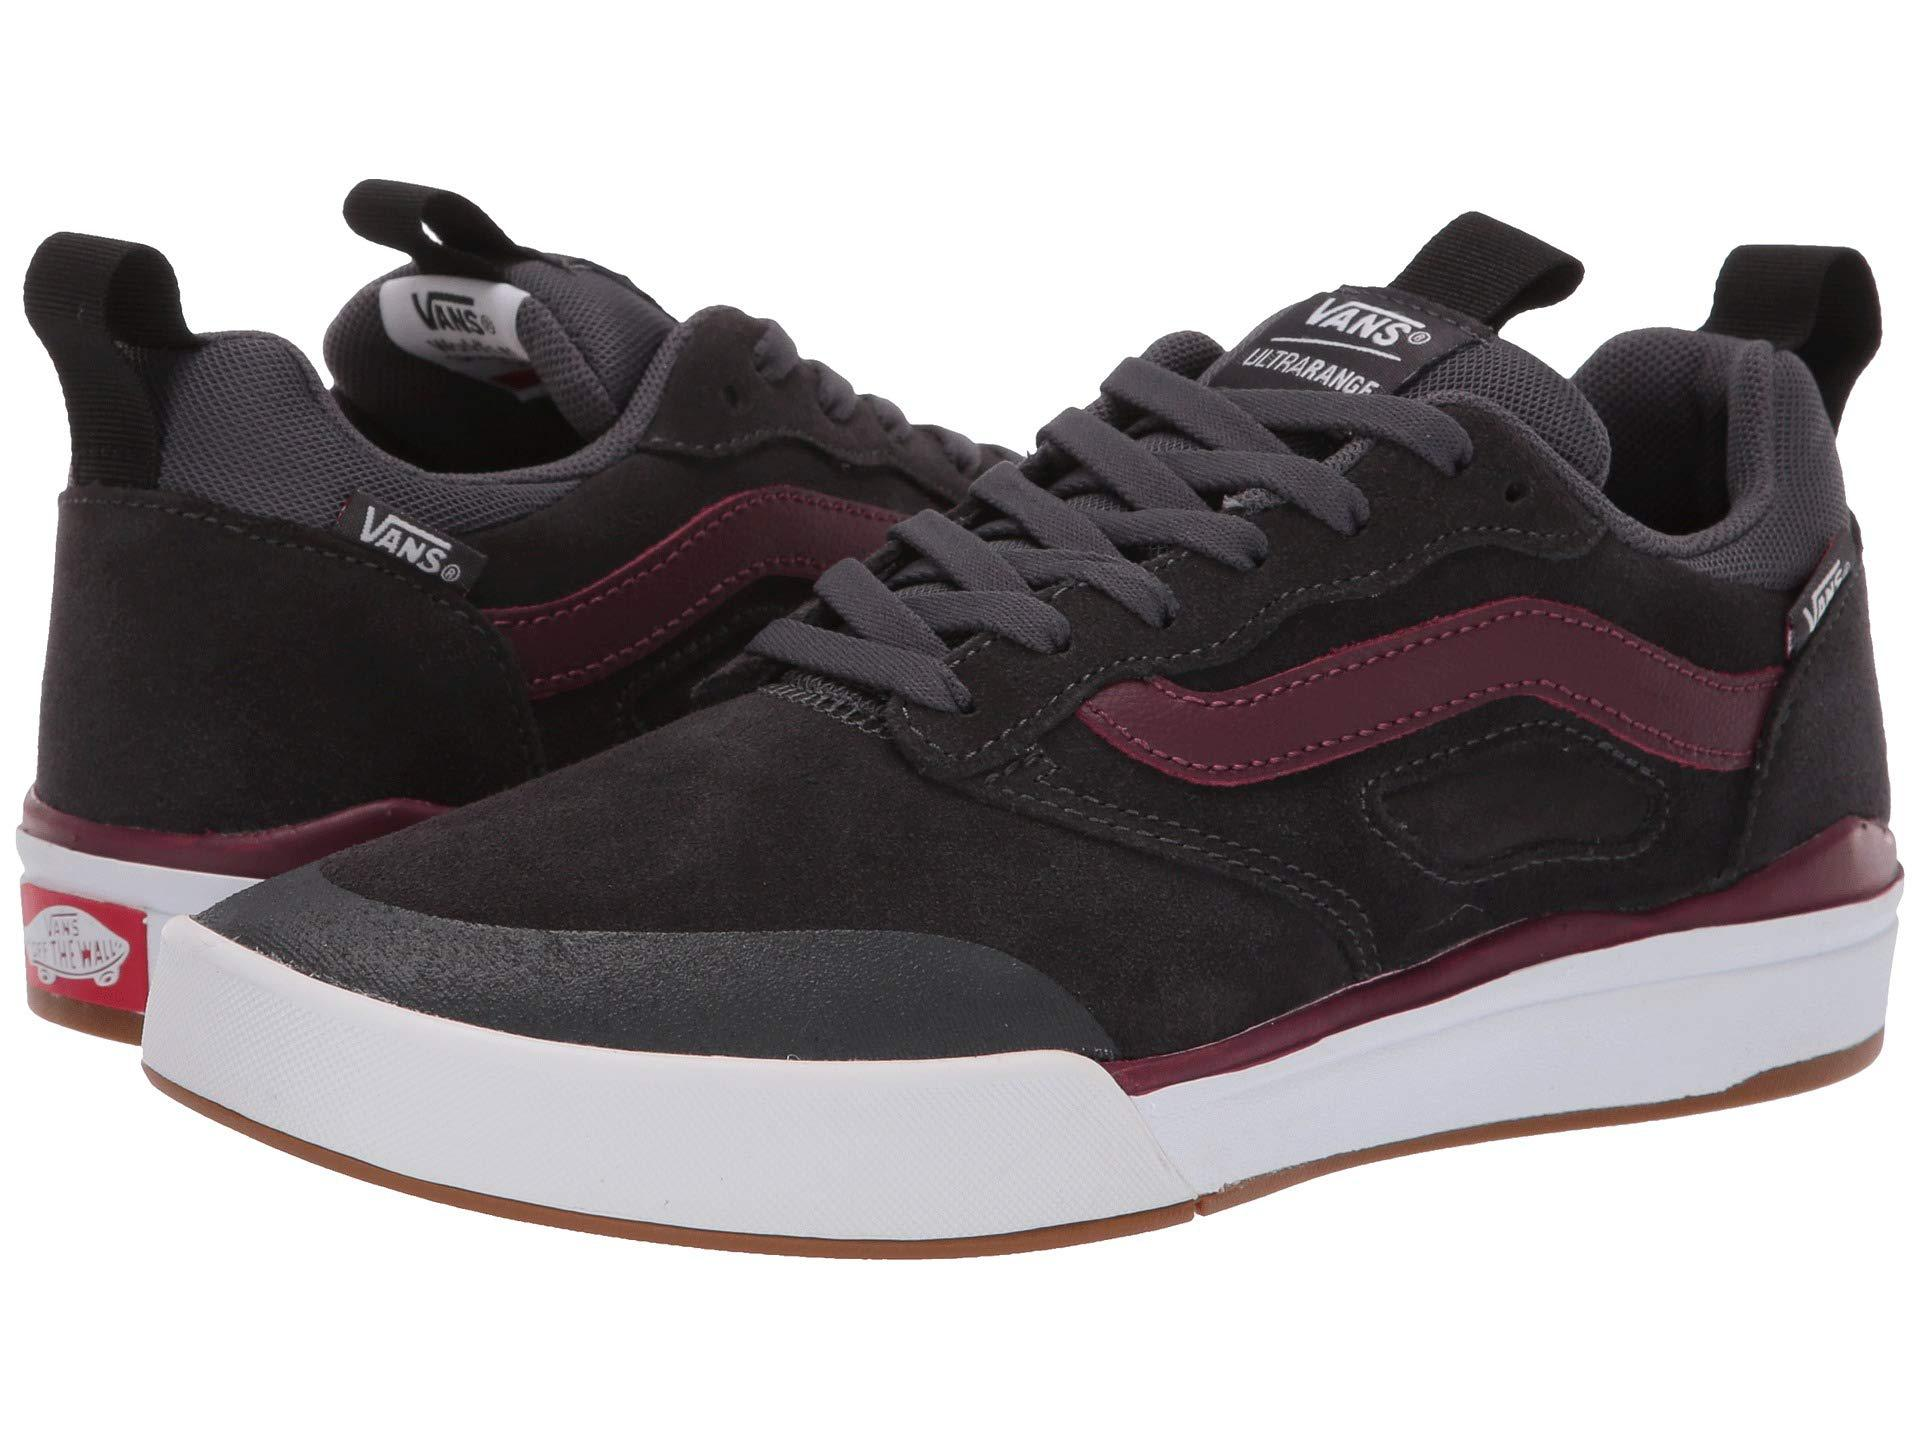 41db048326edbf Vans - Black Ultrarange Pro ((mesh) Asphalt port Royale) Men s Skate. View  fullscreen